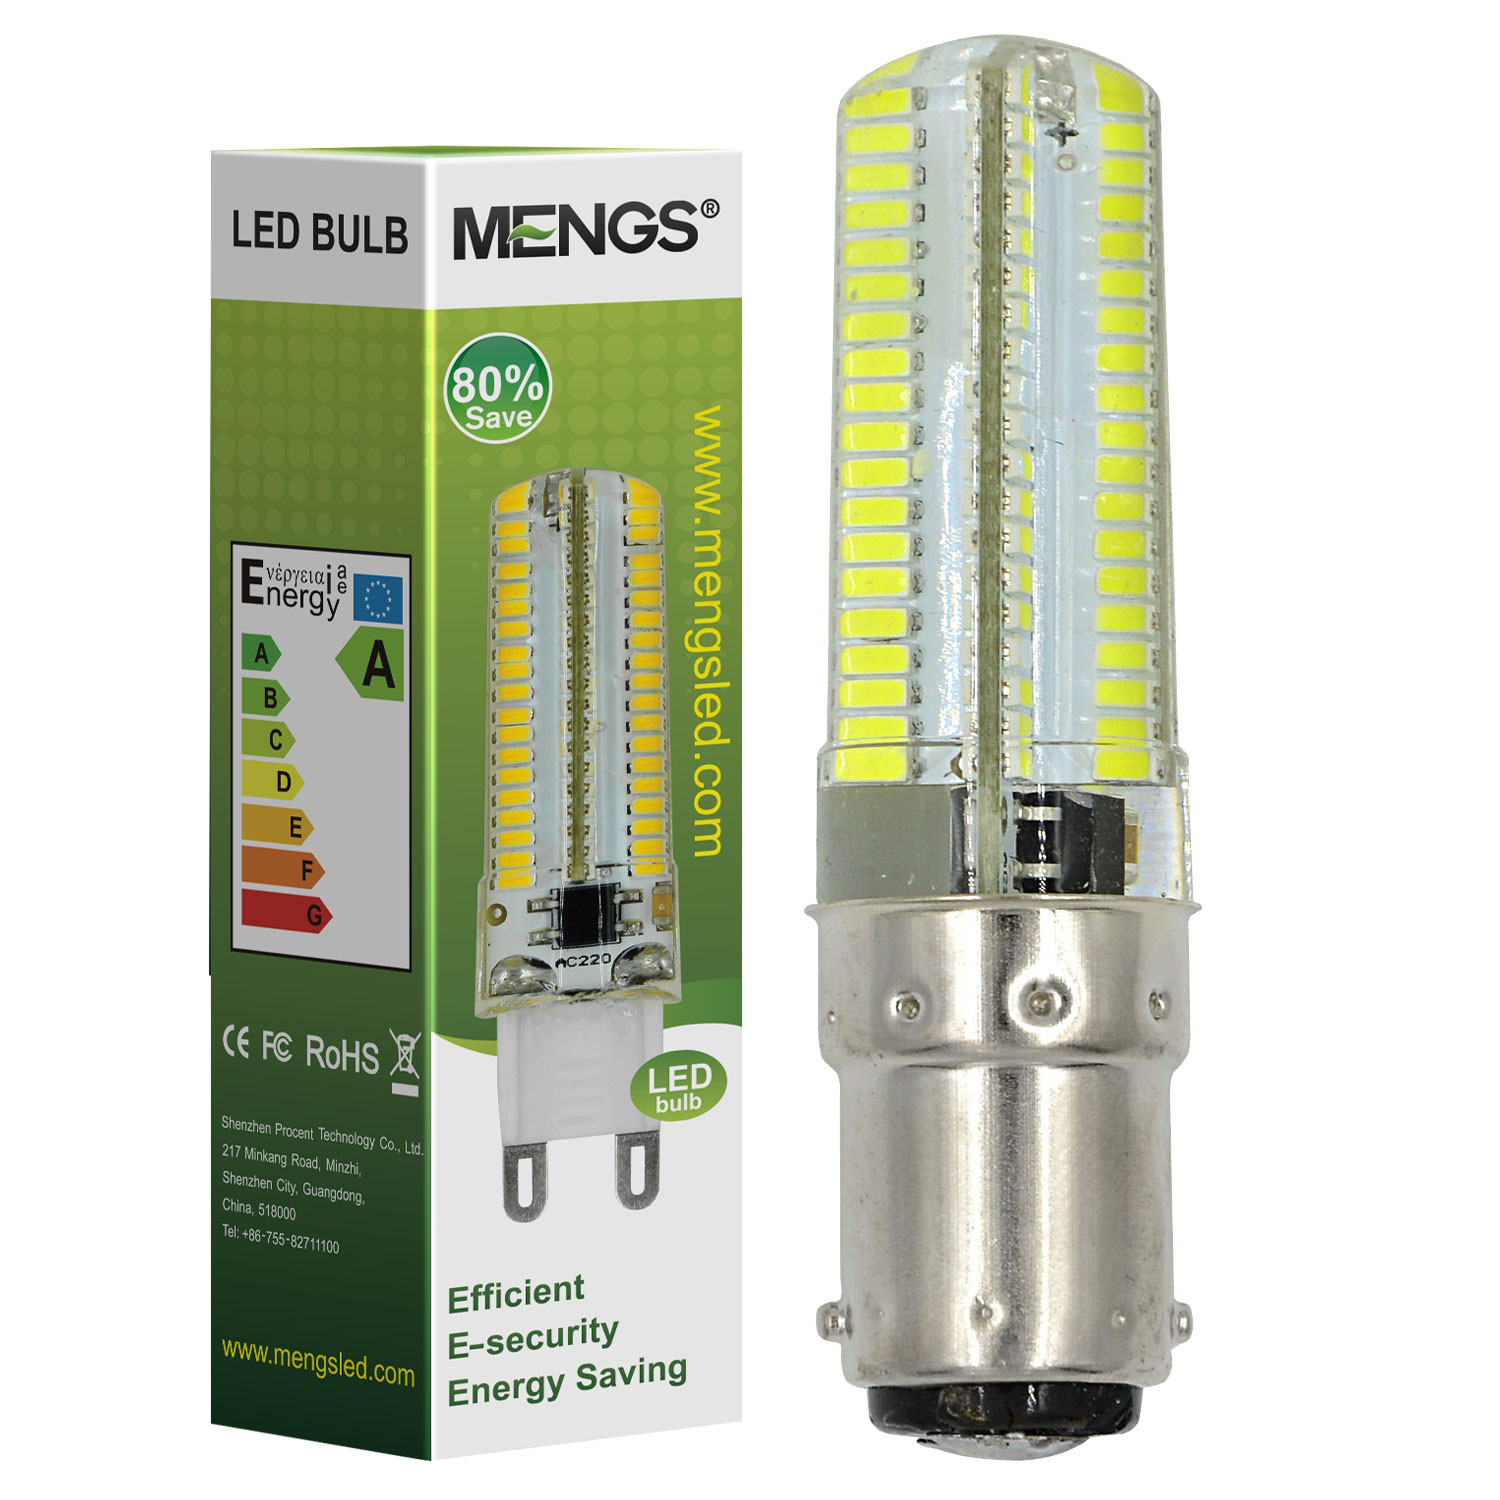 MENGS® B15D 5W LED Light 152x 3014 SMD LED Bulb Lamp In Cool White Energy-Saving Lamp